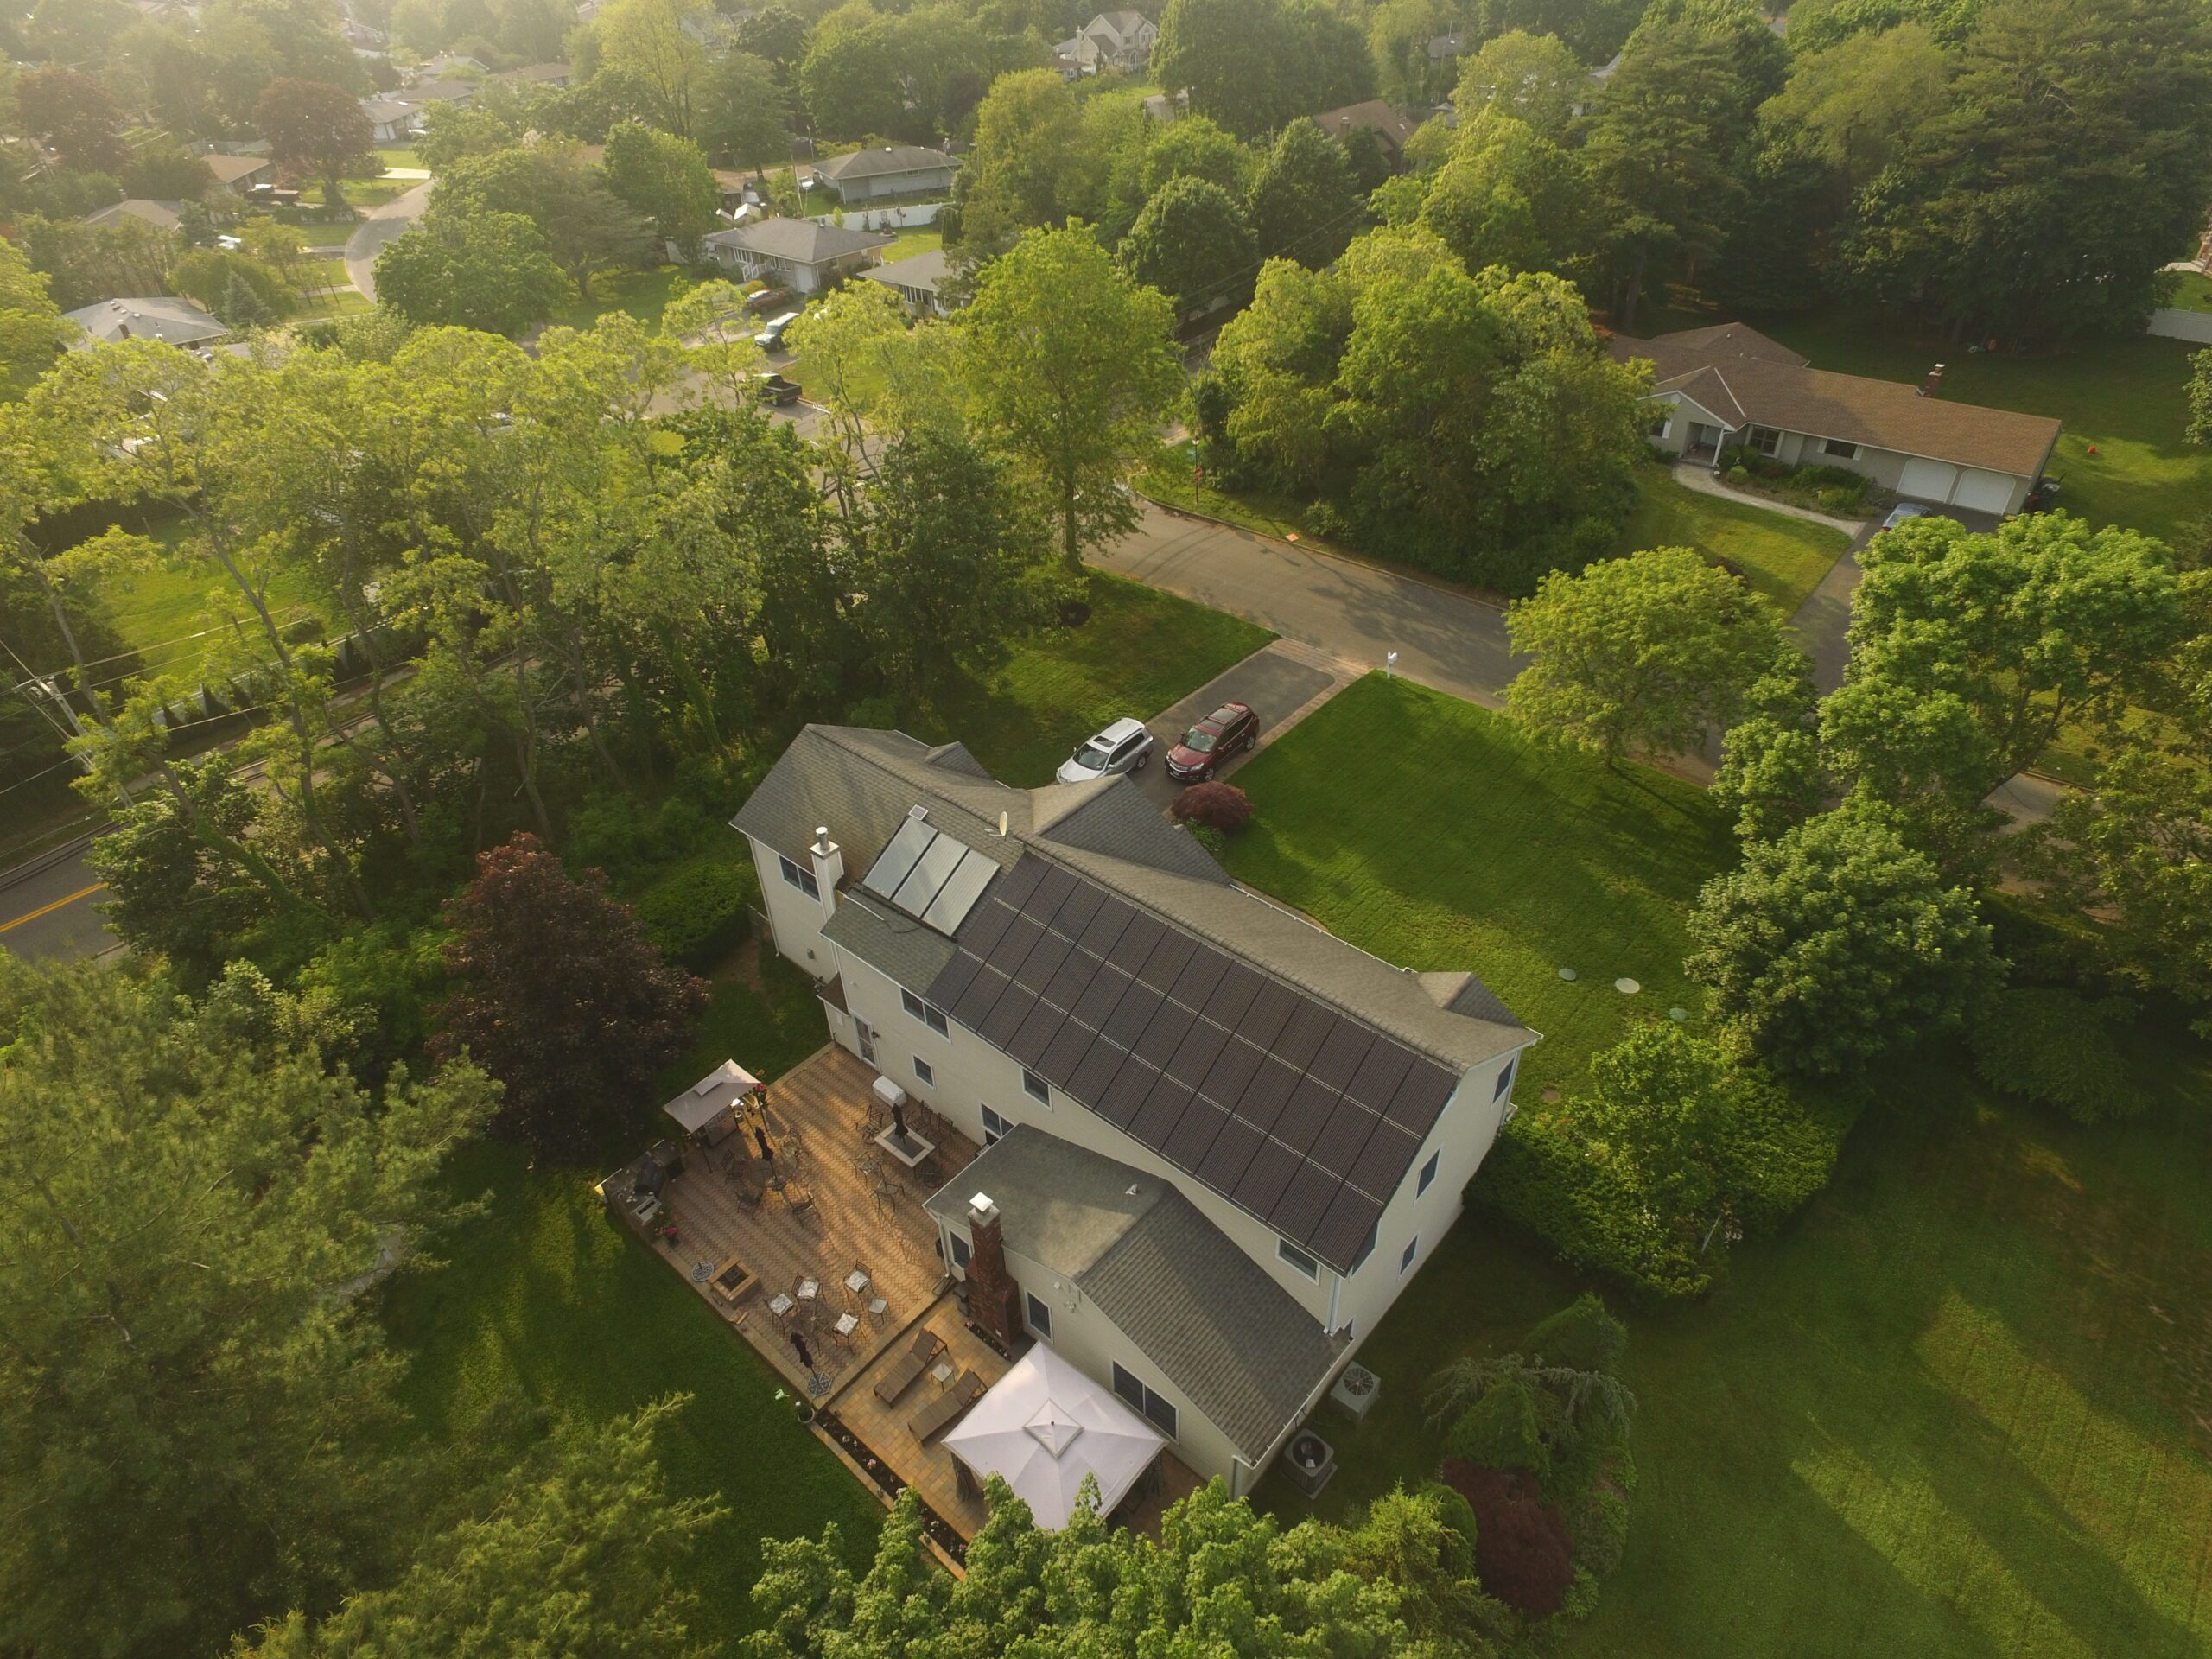 Solar Electric & Hot Water Installation - St. James, NY